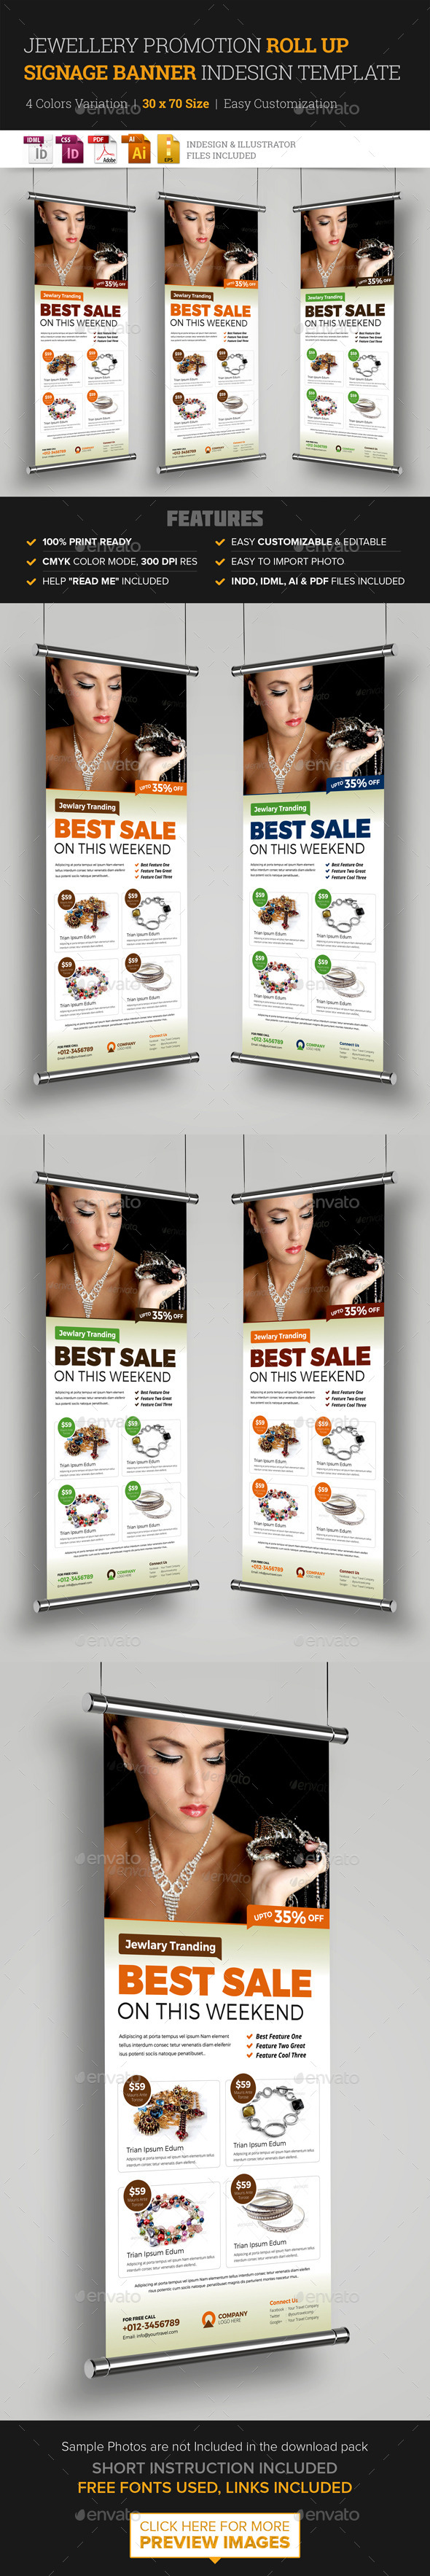 Jewellery Shop Roll Up Banner Signage InDesign - Signage Print Templates